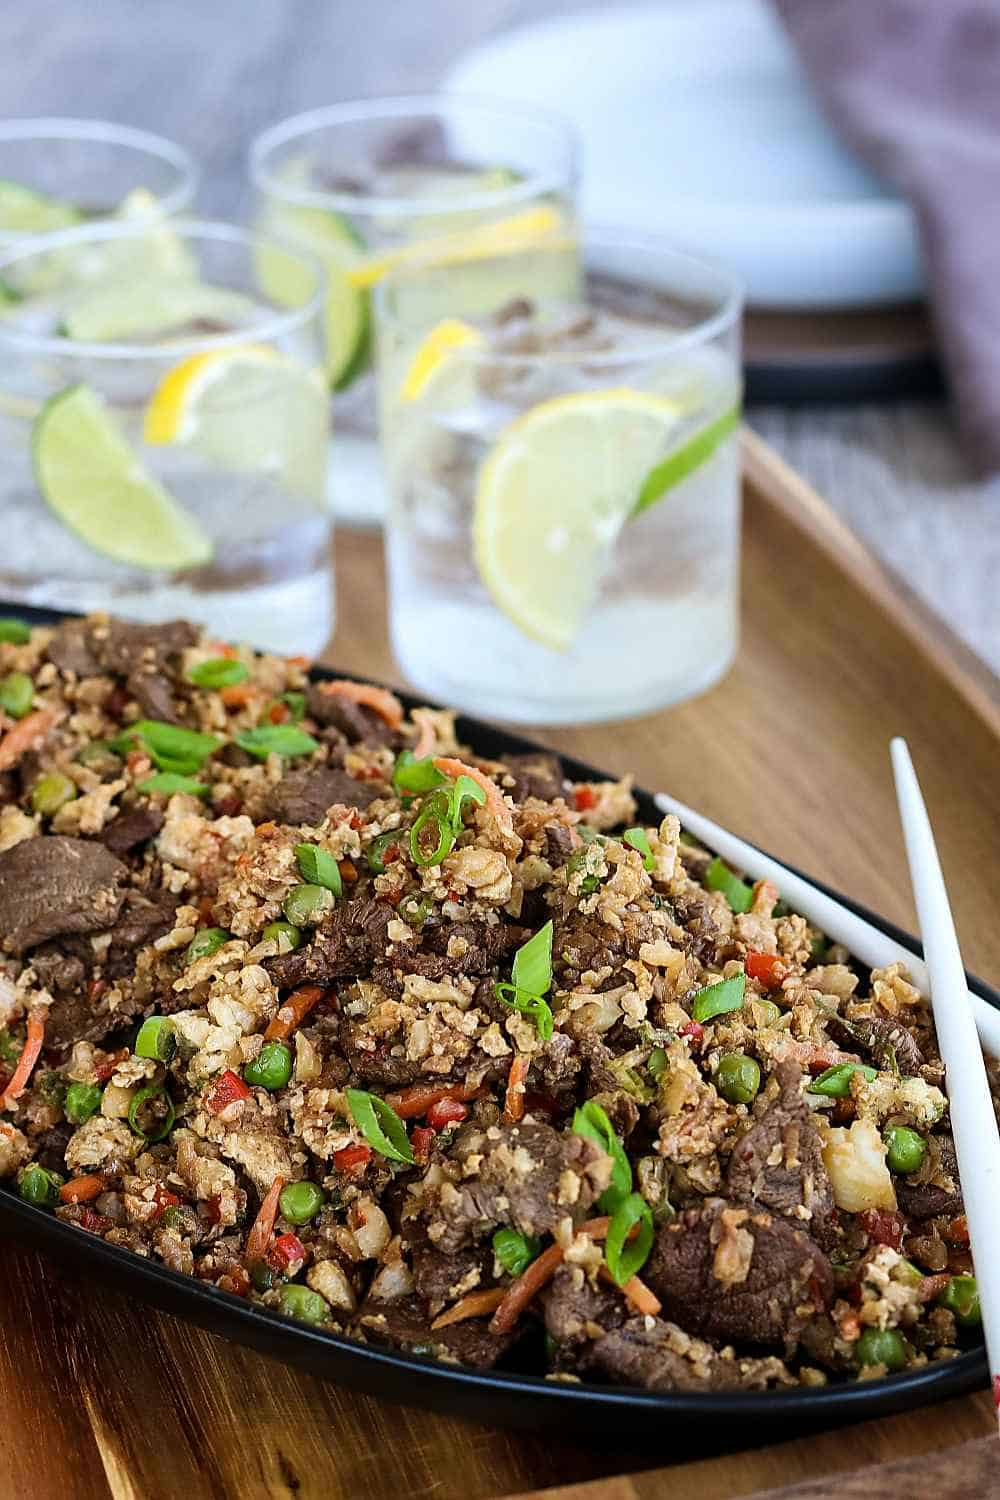 Flavorful cauliflower rice stir fry on a serving platter with drinks.